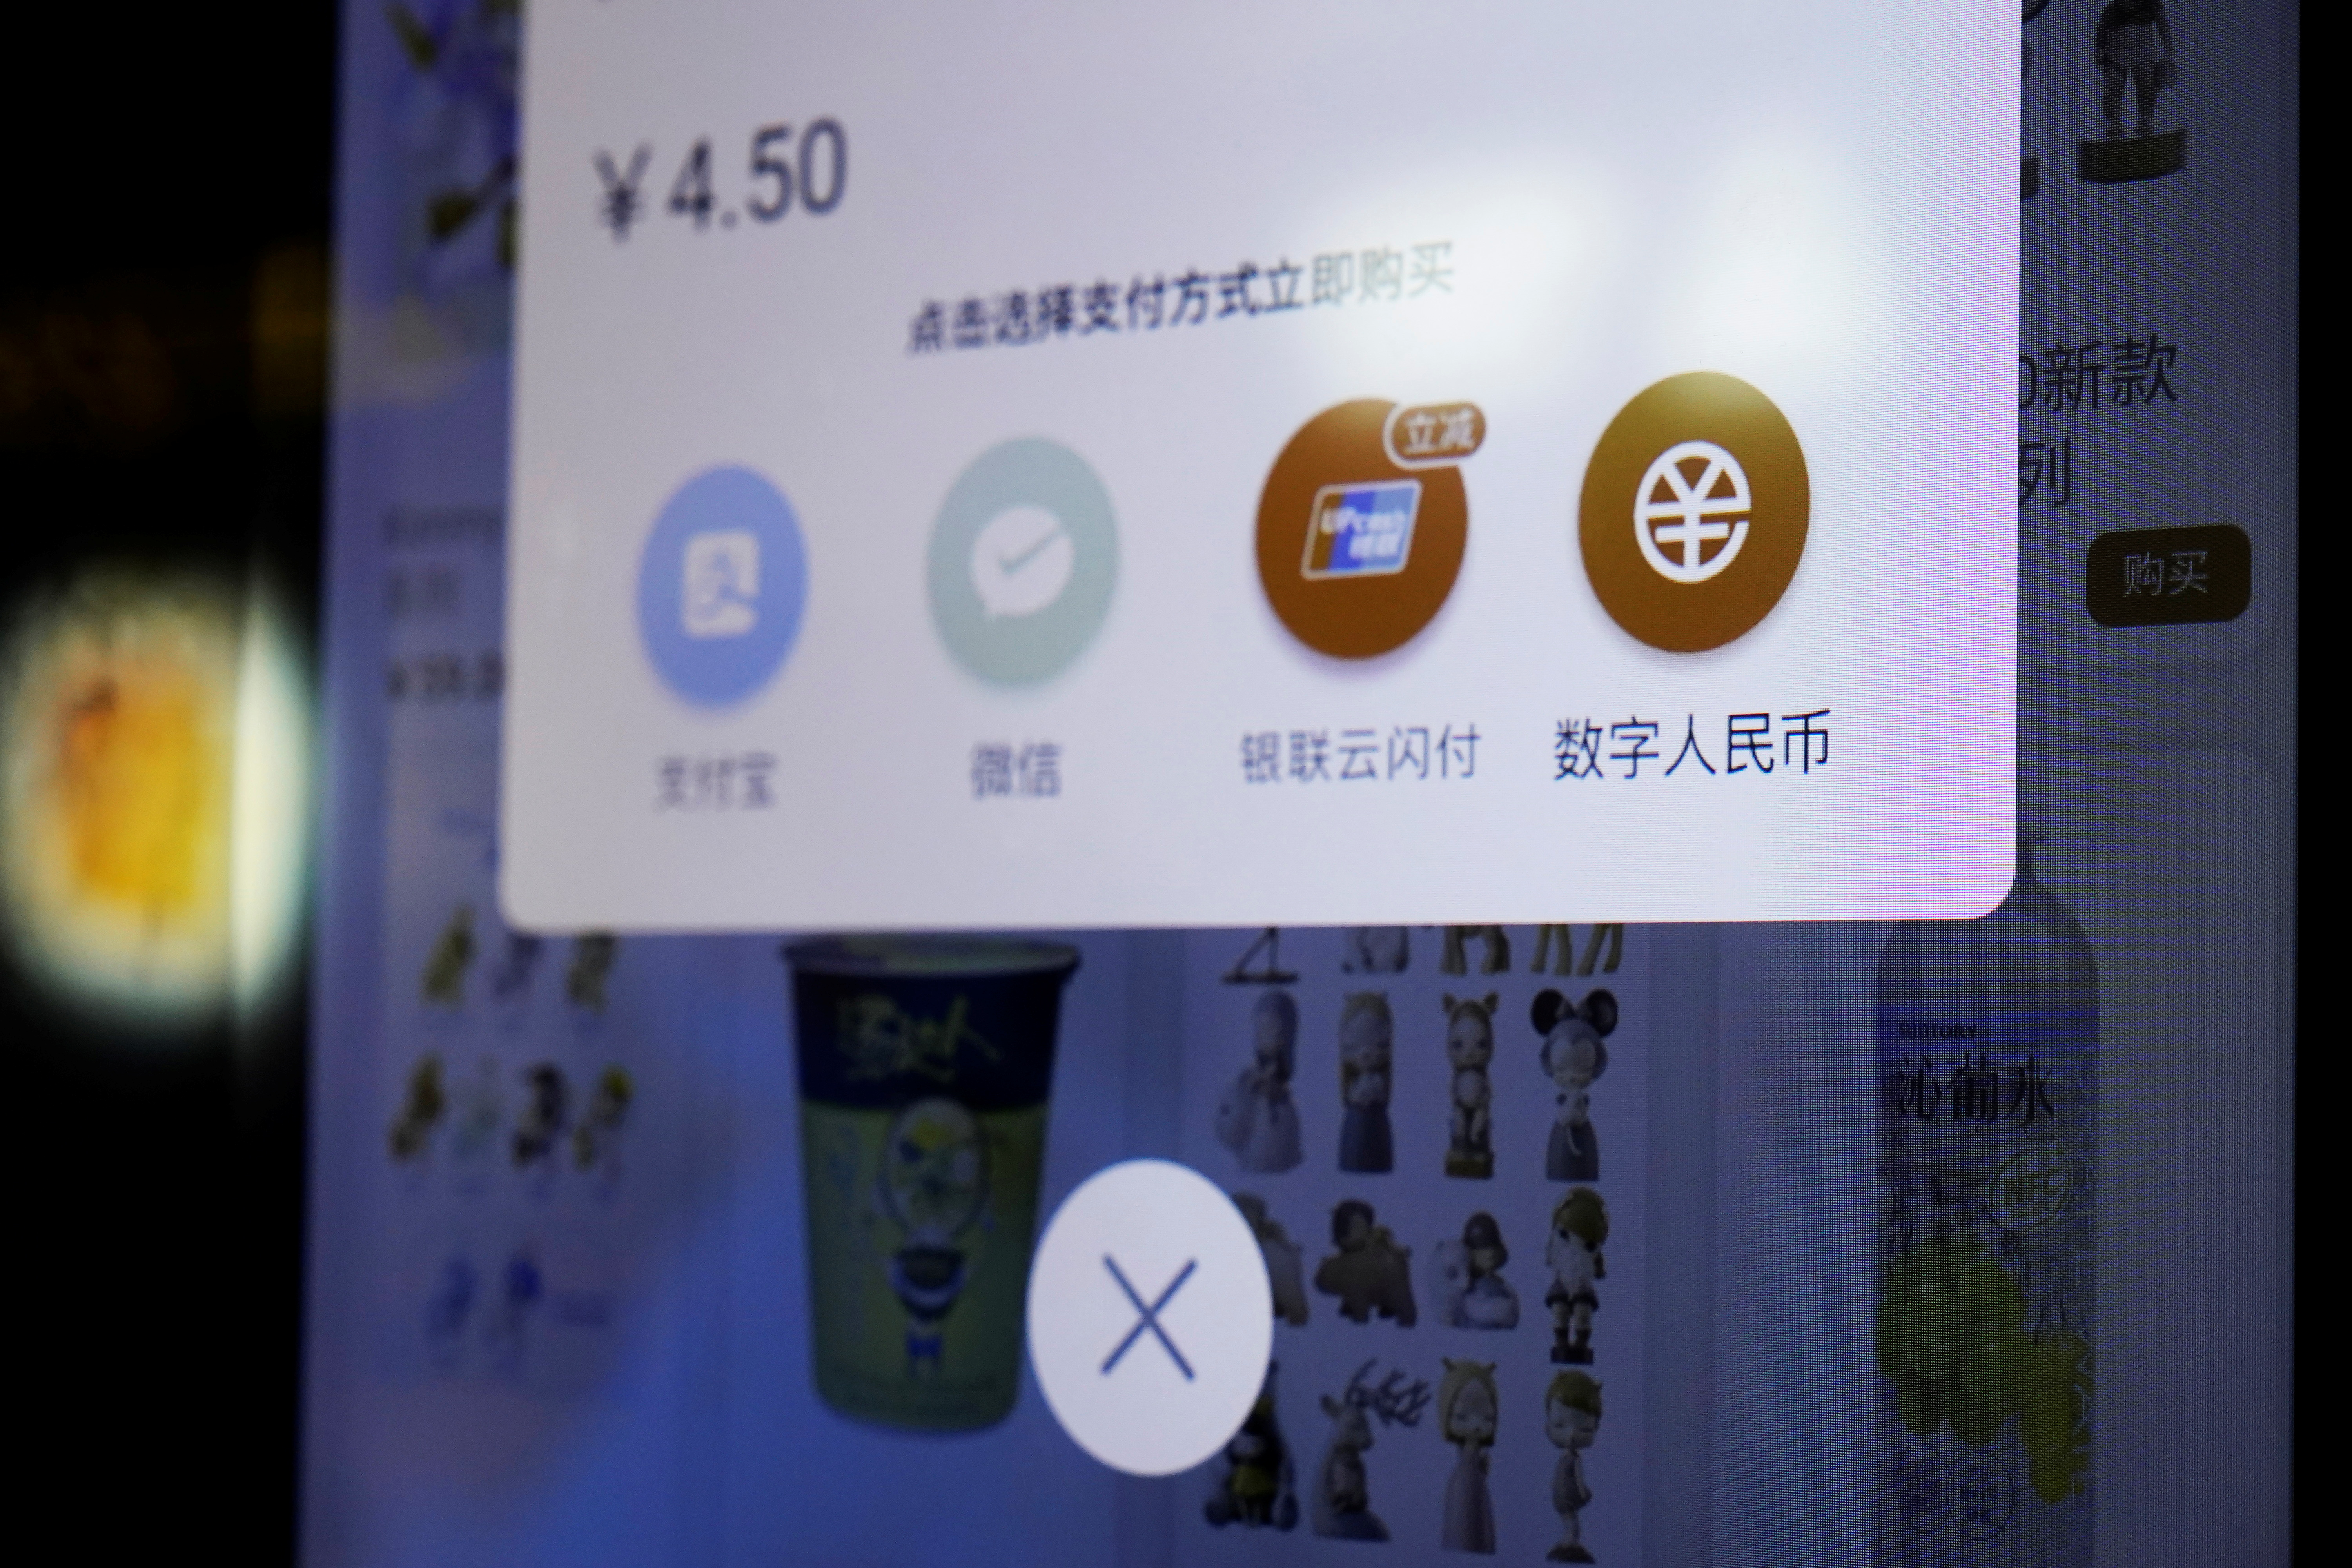 A sign indicating digital yuan, also referred to as e-CNY, is pictured on a vending machine at a subway station in Shanghai, China April 21, 2021. REUTERS/Aly Song